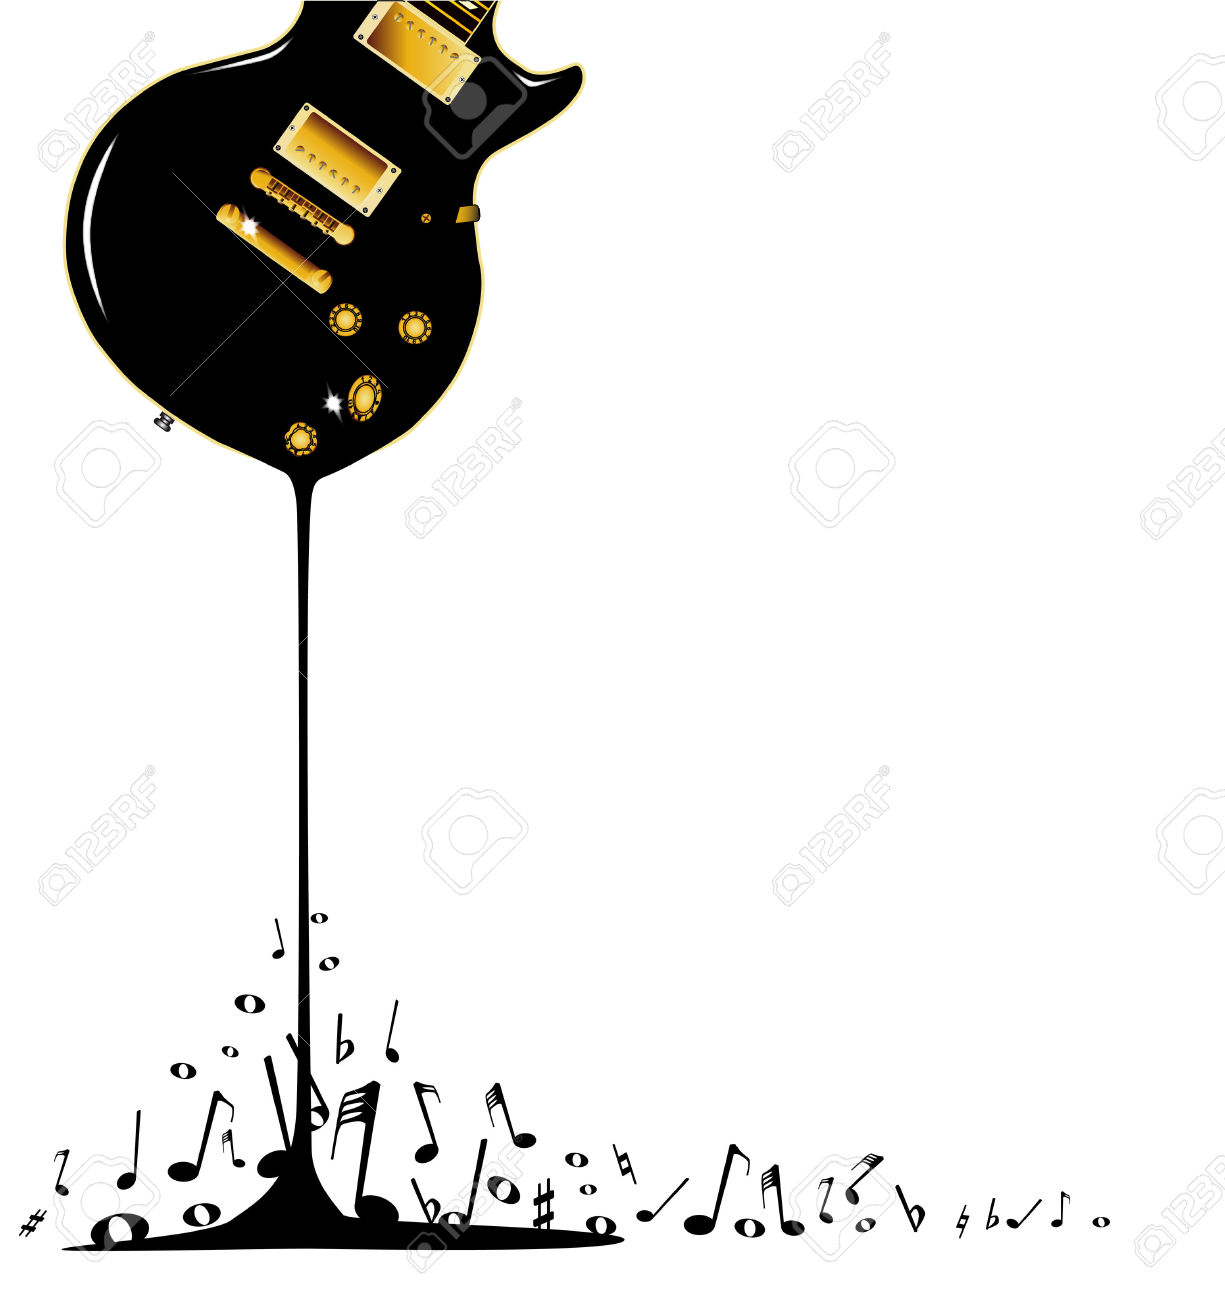 A Rock Guitar Melting Down With Musical Notes Splashing Around.